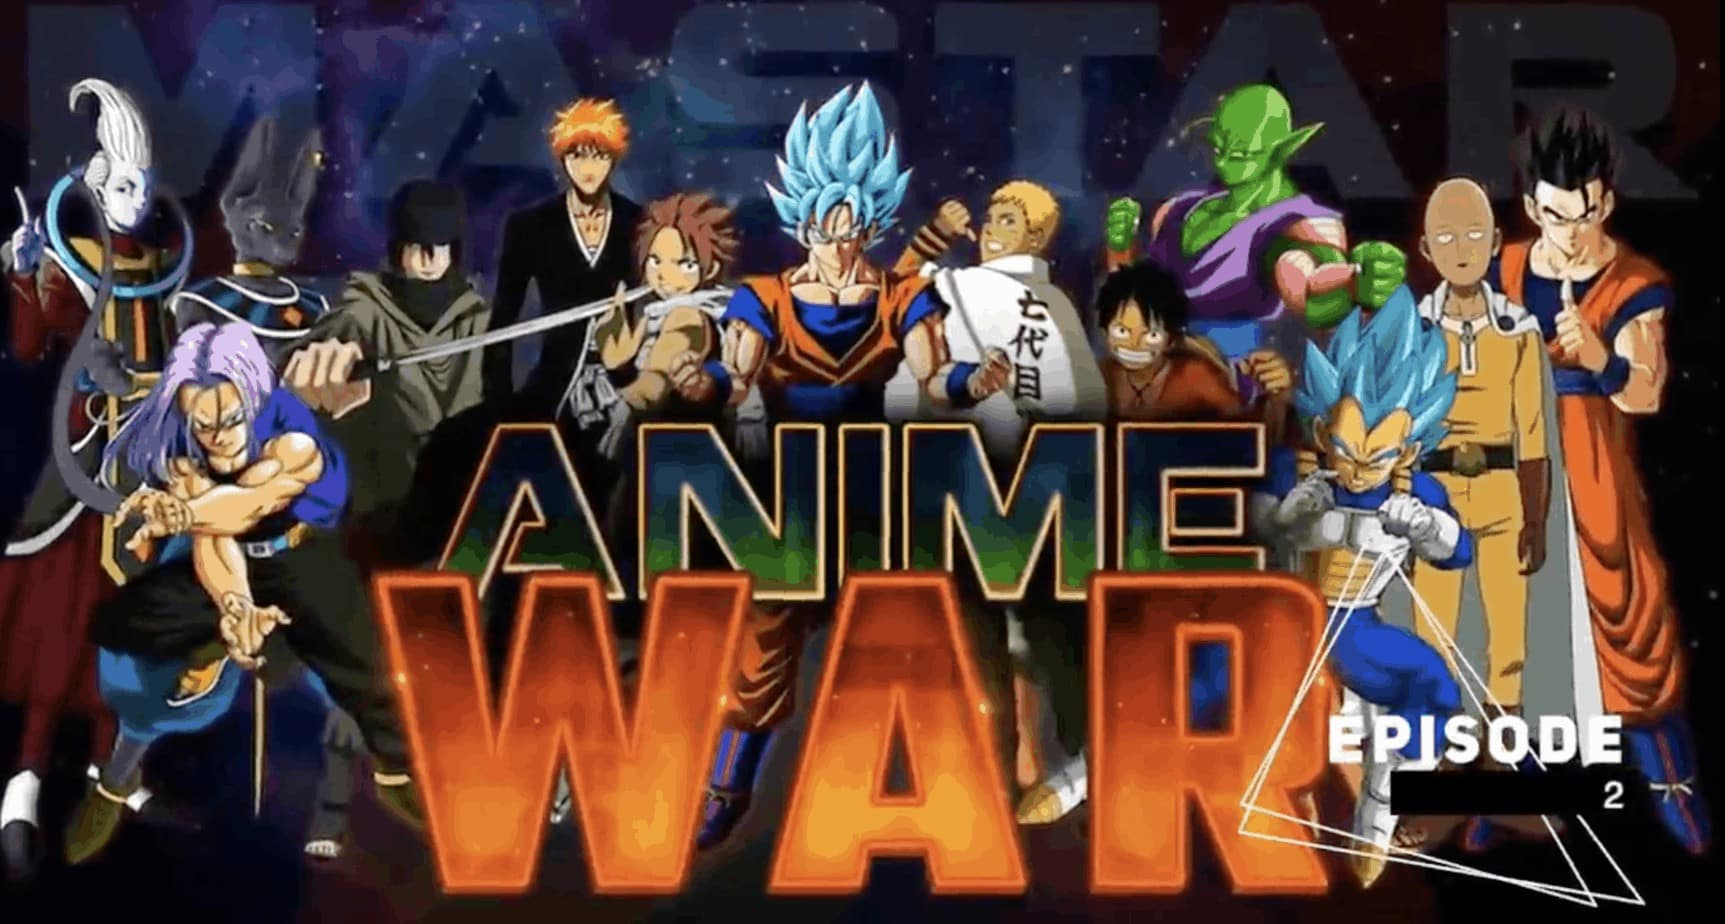 Anime War épisode 2 Vostfr 9